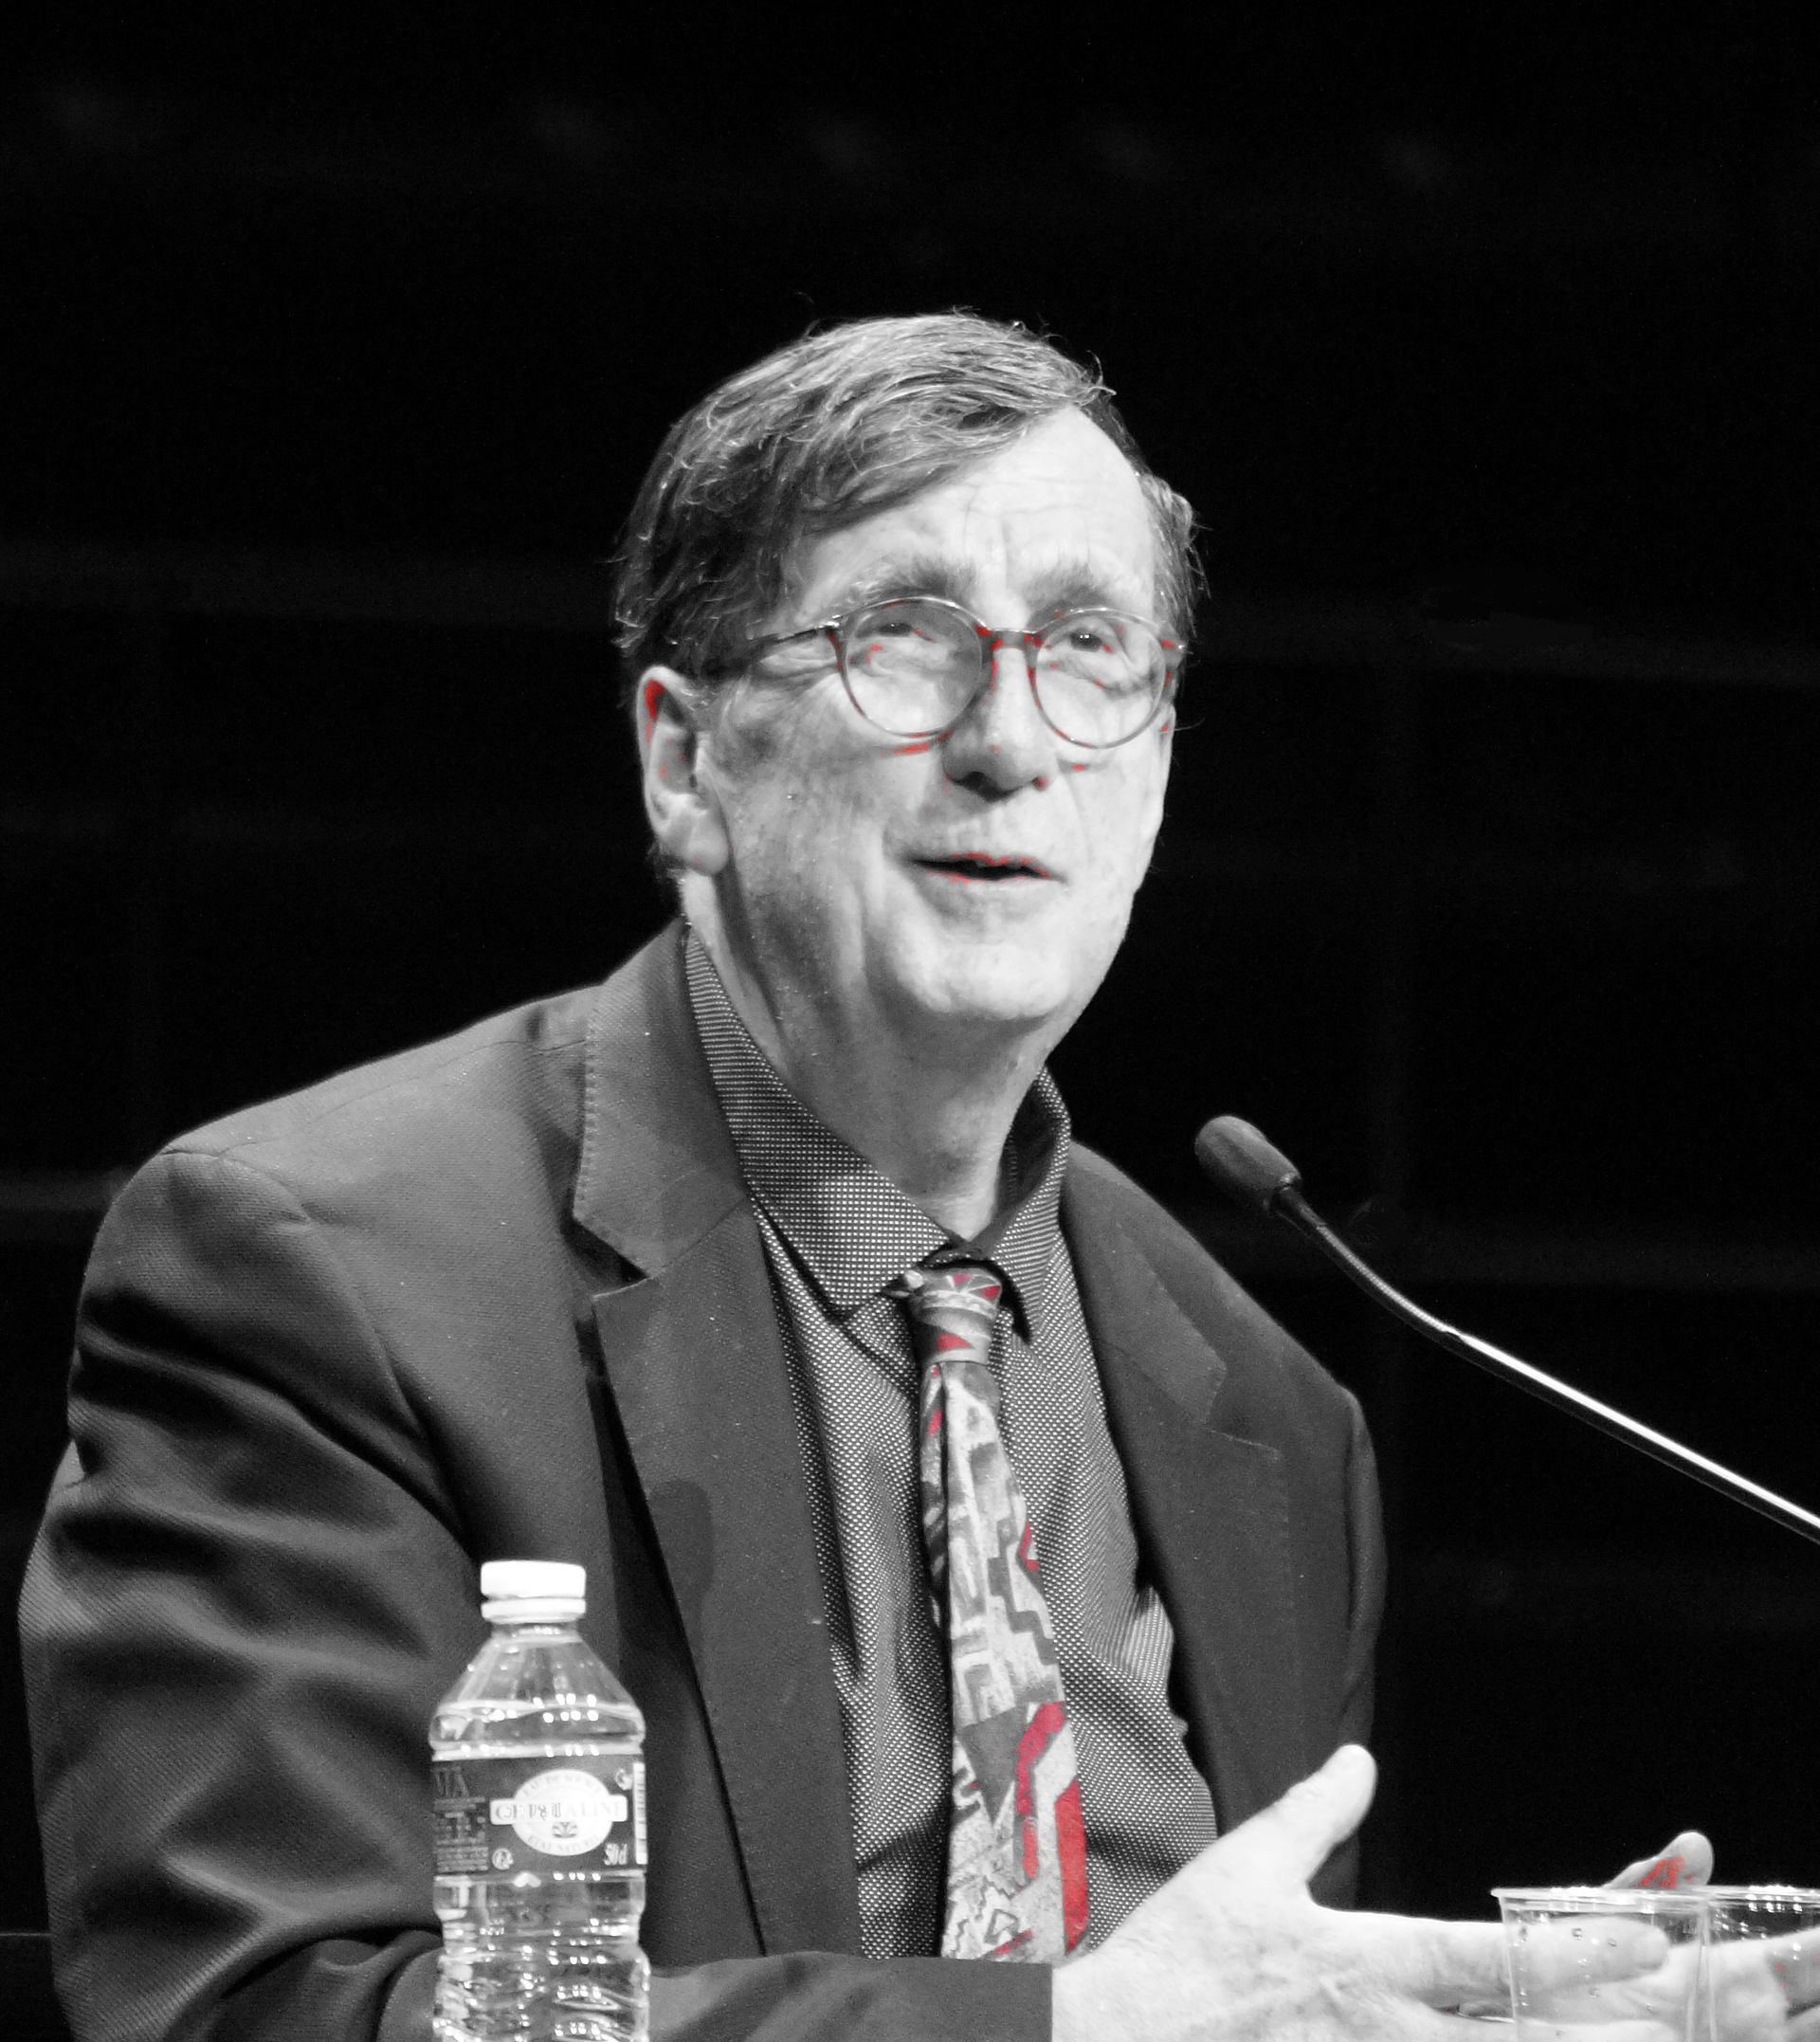 bruno latour essays on the reality of science studies After field studies in africa and california, bruno specialized in the analysis of scientists and engineers at work, producing a series of ground-breaking and reassembling the social, the essay collection pandora's hope: essays in the reality of science studies, and, most recently, an inquiry into modes of.